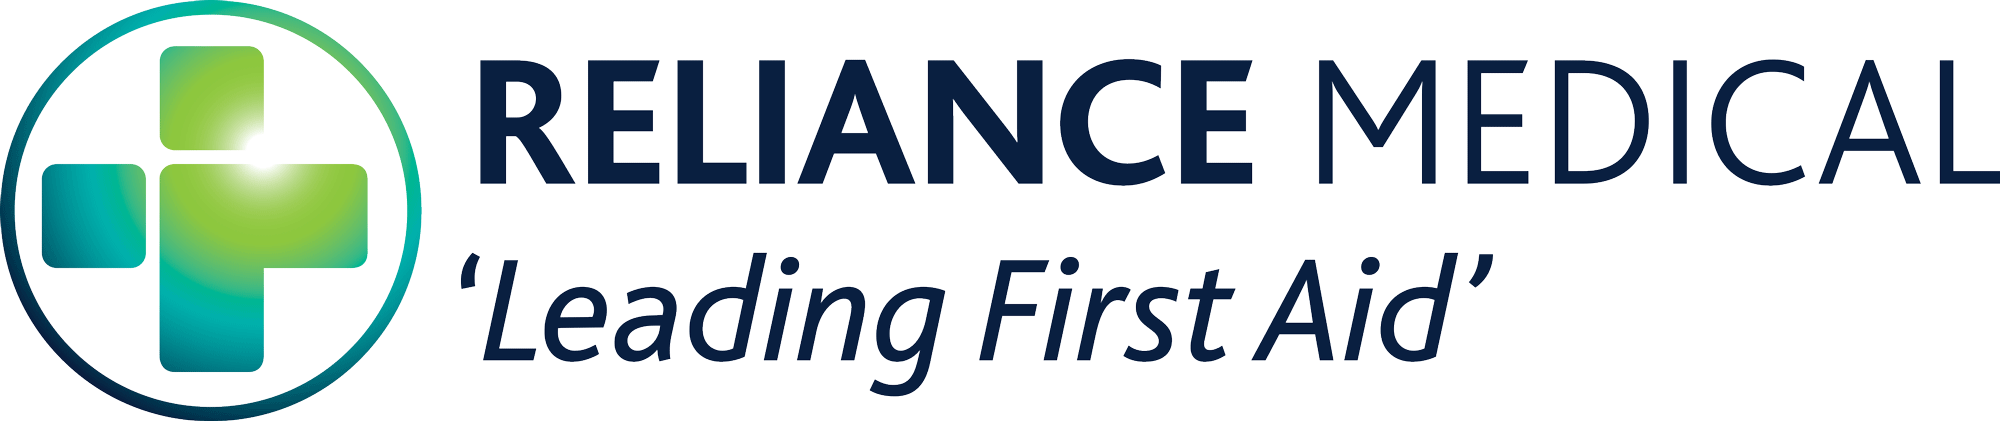 Reliance Medical Limited First Aid Manufacturer Supplies